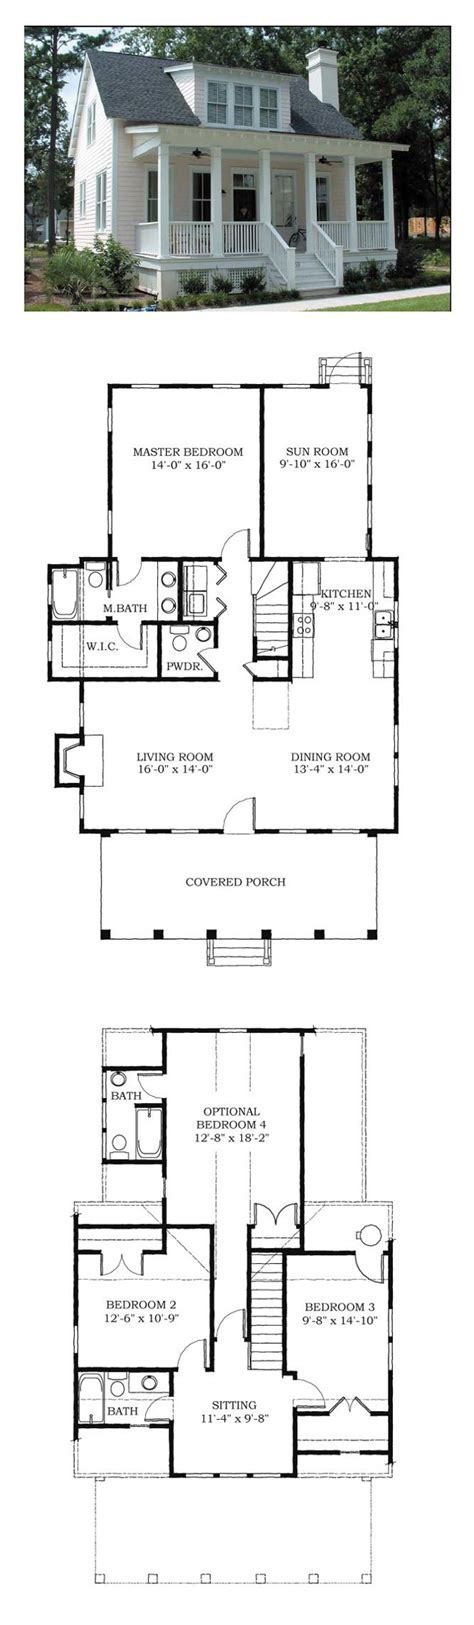 cool office floor plans 101 interior design ideas home bunch interior design ideas